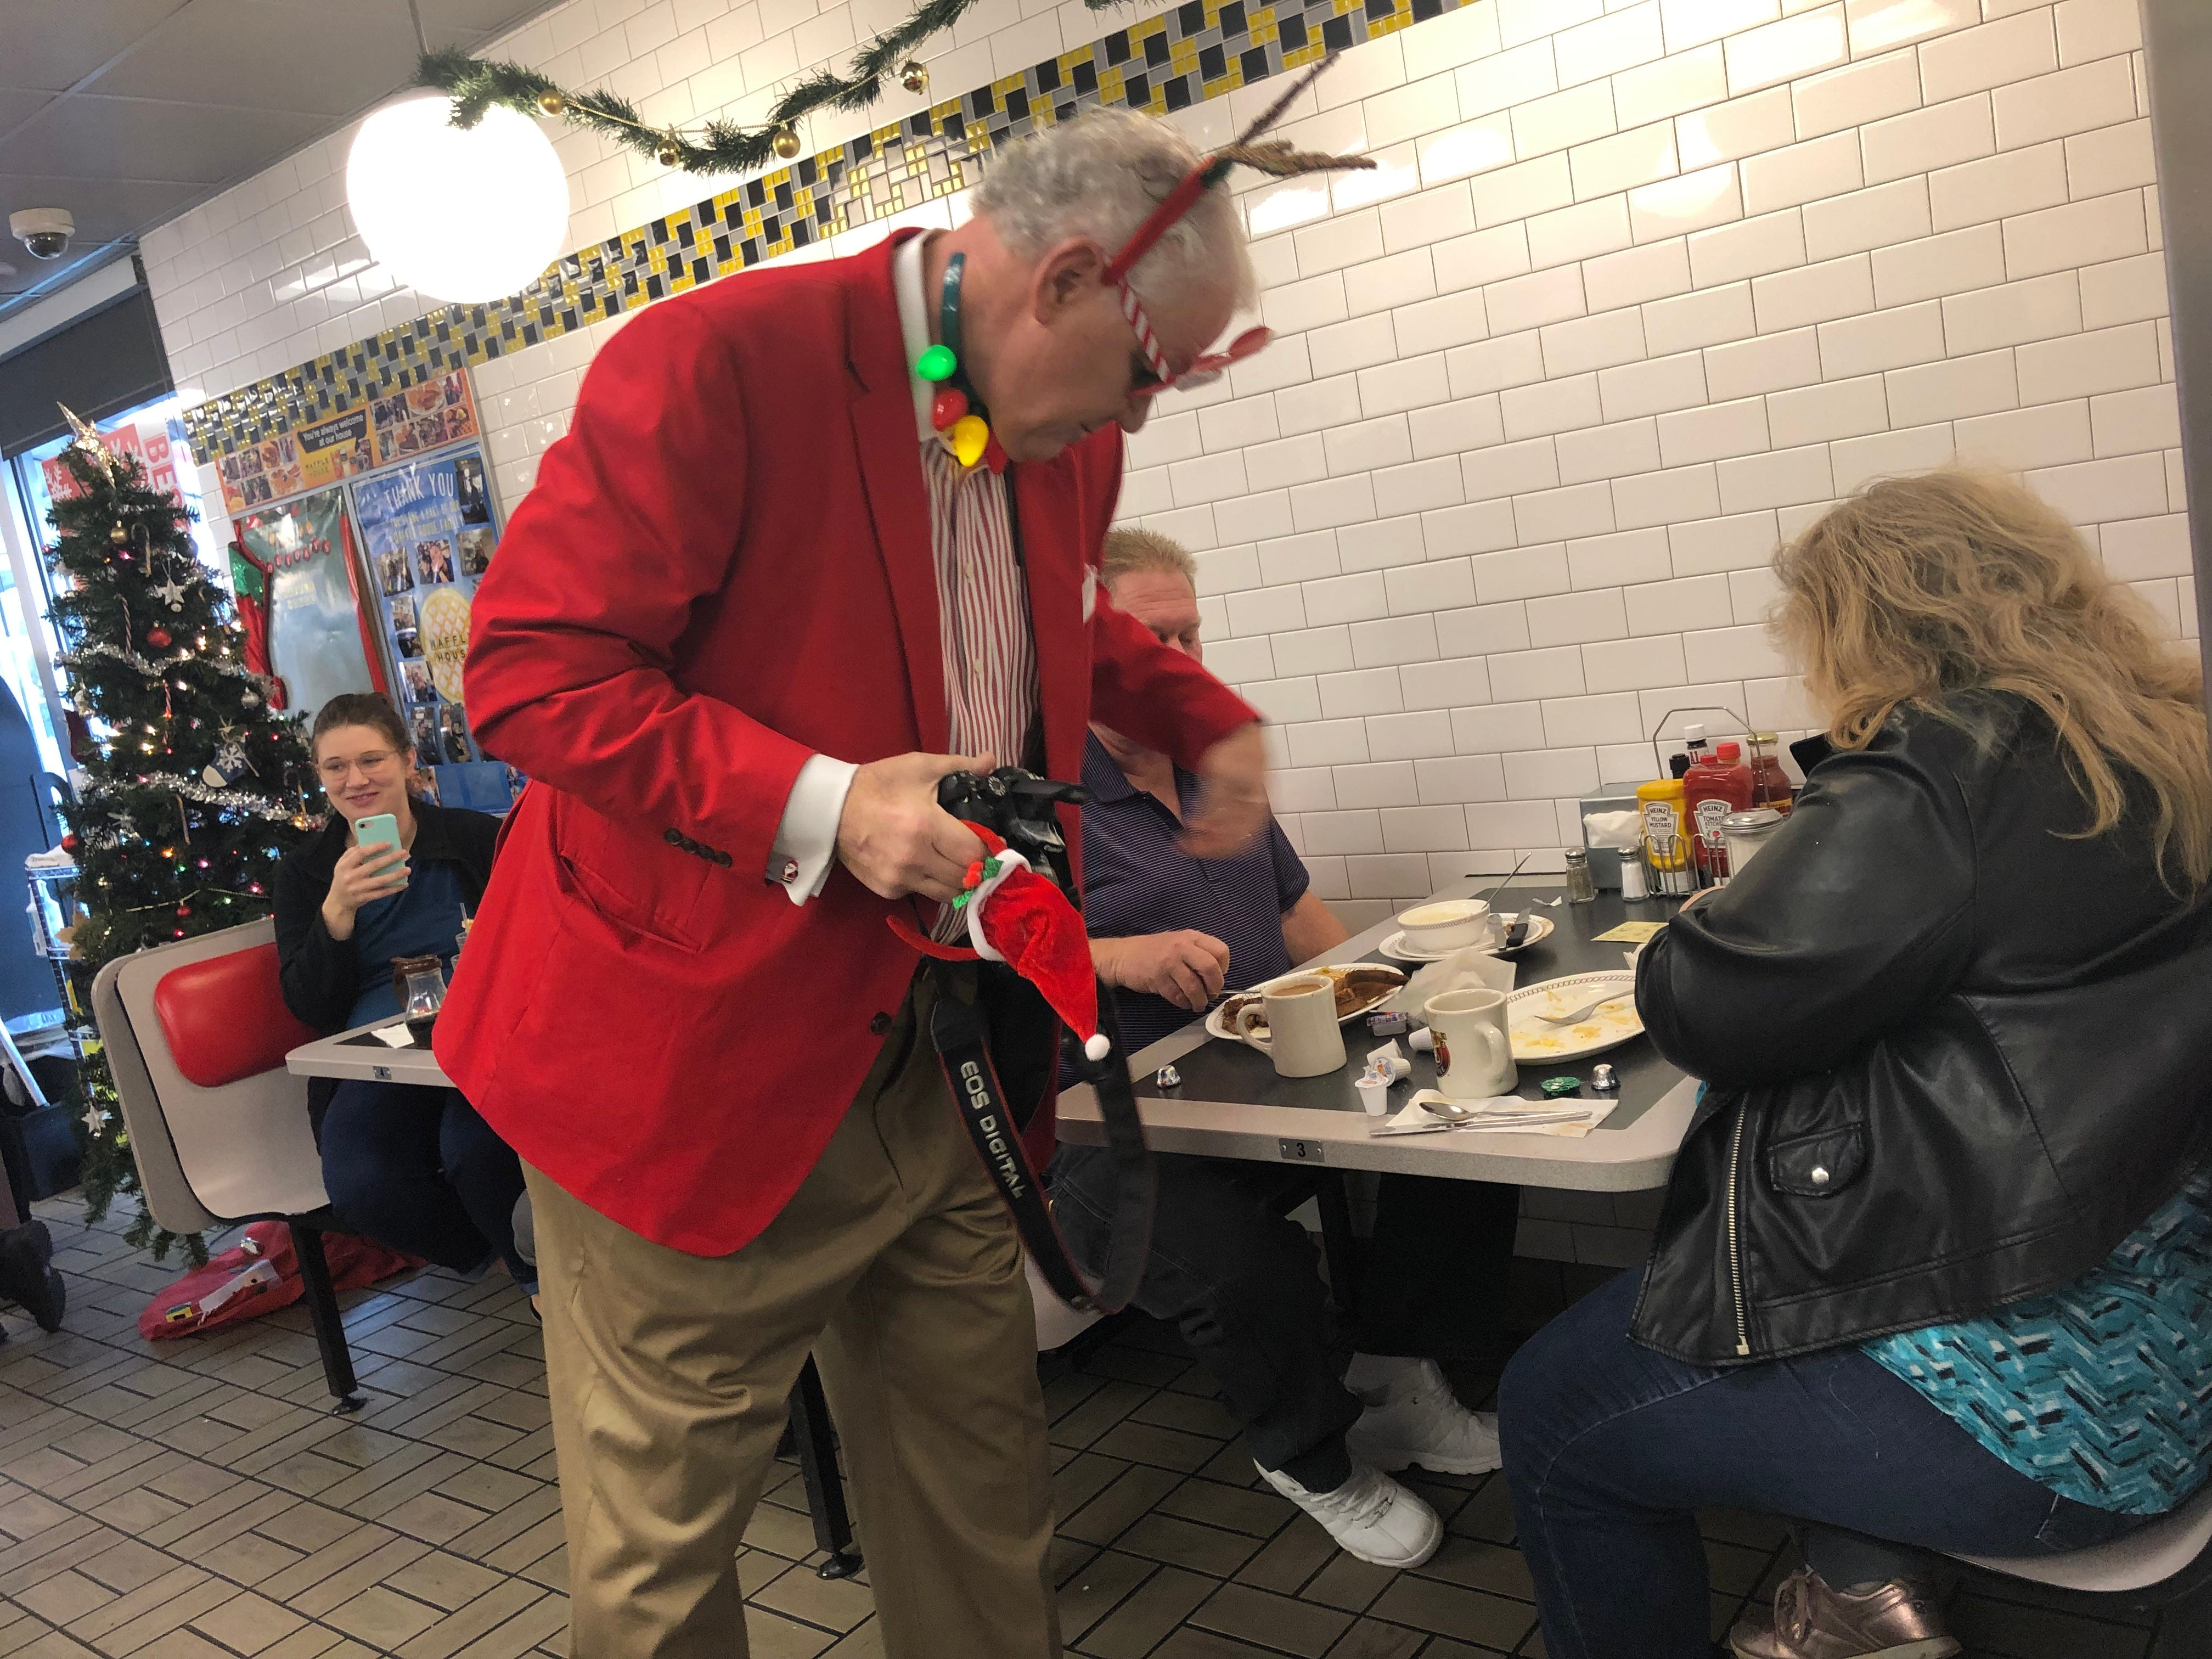 """Santa"" George Armistead puts candy on the table of some customers on Christmas morning 2018 at the White Bridge Road location of Waffle House"